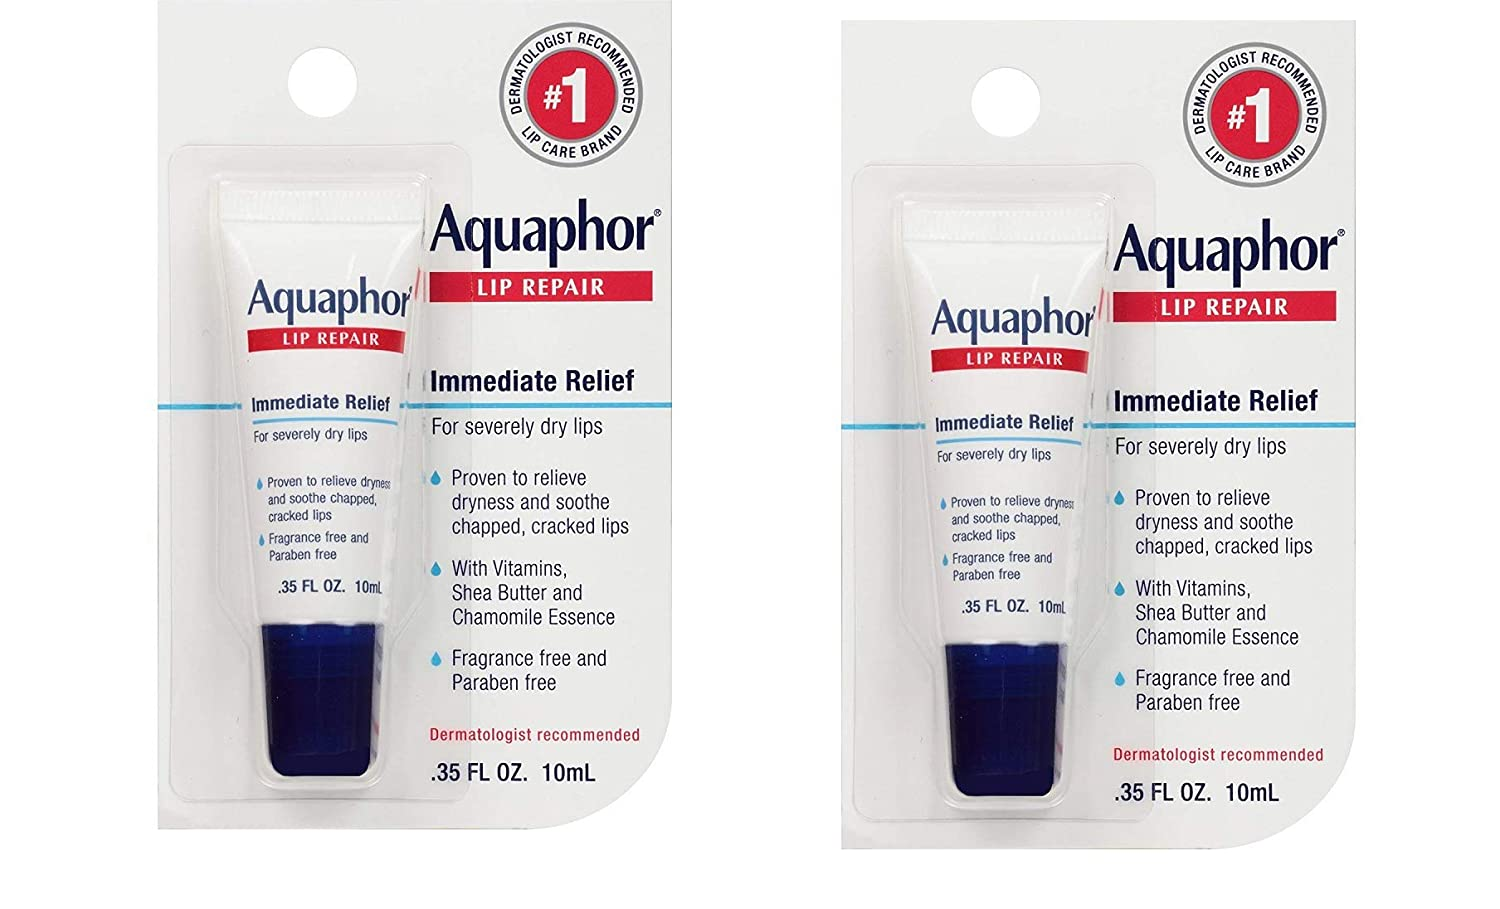 Aquaphor Lip Repair Ointment - Long-lasting Moisture to Soothe Dry Chapped Lips - .35 fl. oz Tube, 2 Pack